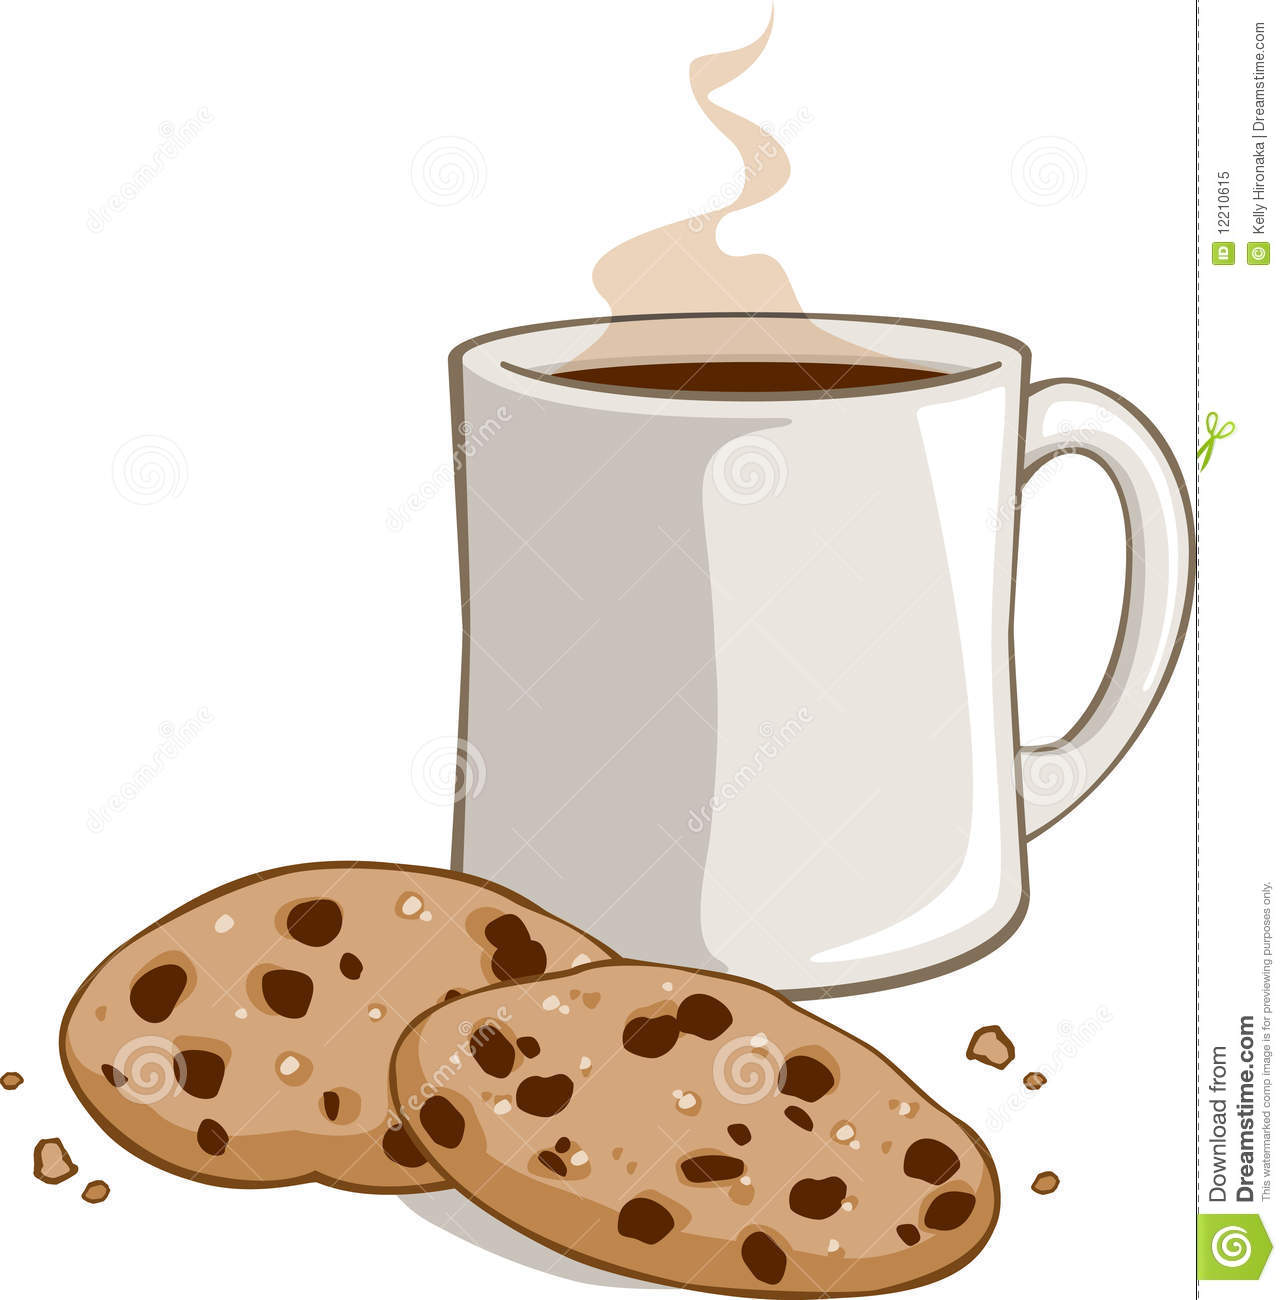 Cookies And Hot Chocolate Clipart.